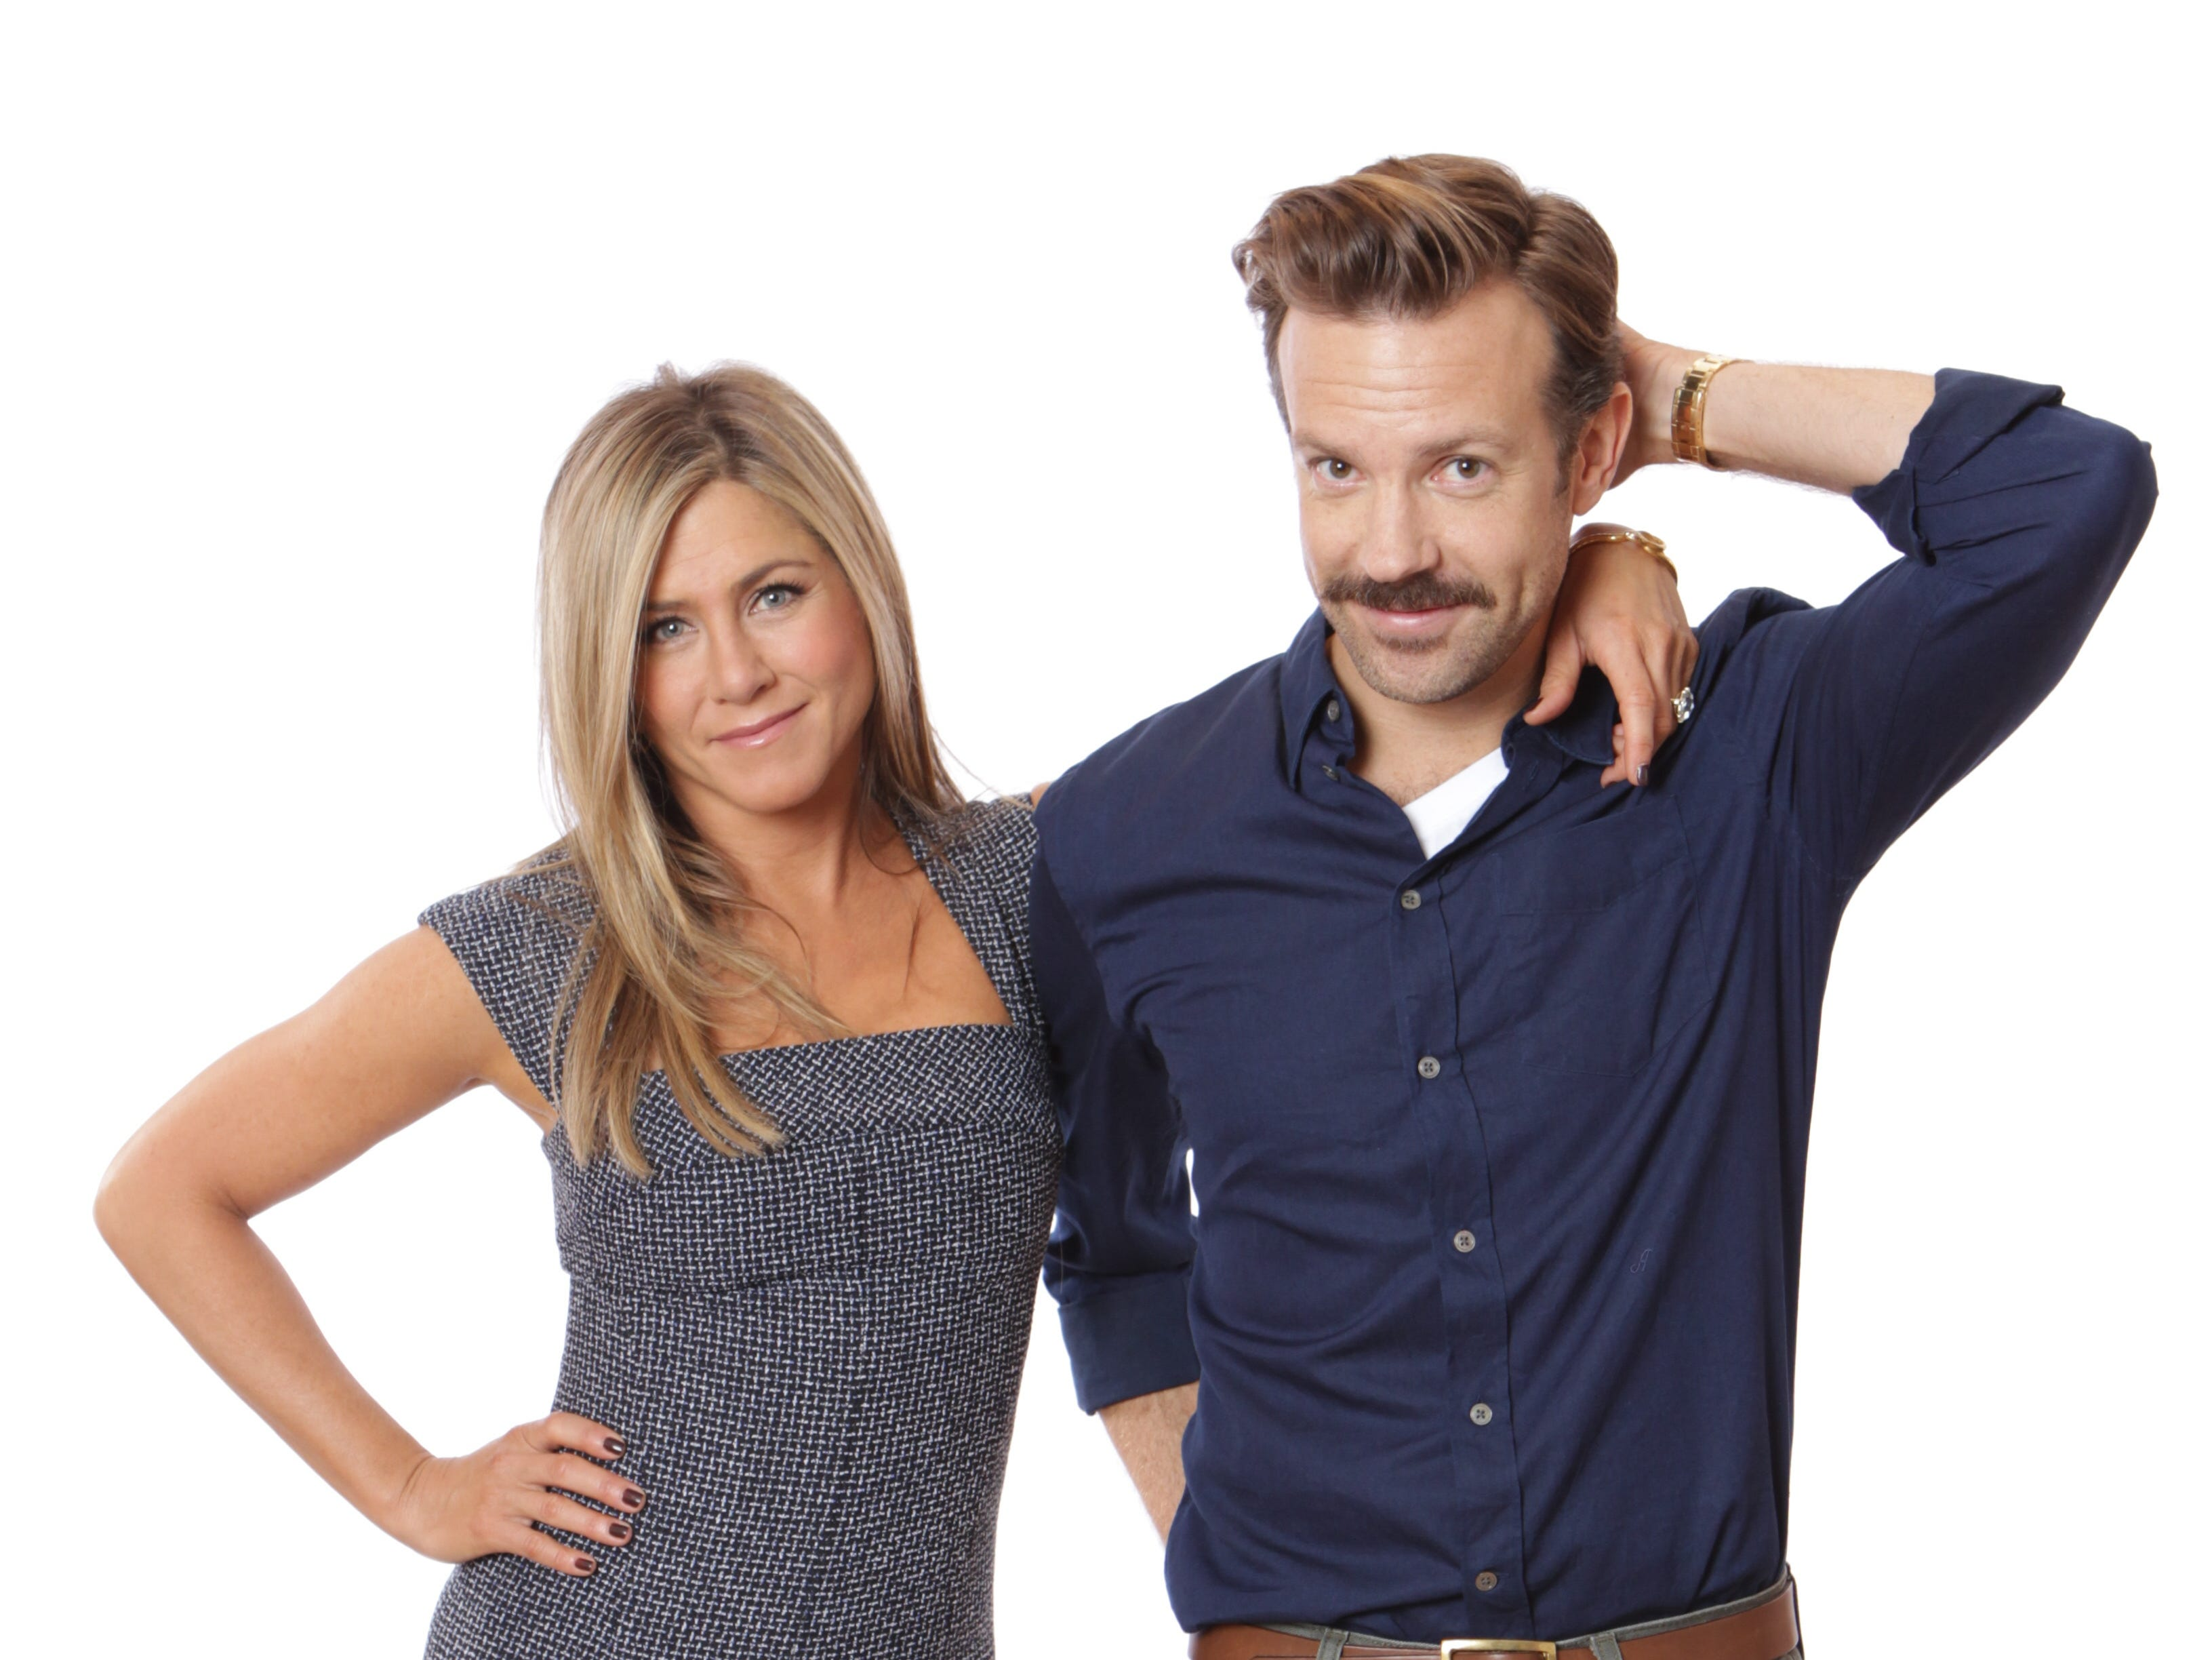 """In 2013, she starred opposite """"Saturday Night Live"""" alumnus Jason Sudeikis in """"We're the Millers,"""" posing as a family to smuggle an RV full of marijuana through the U.S./Mexico border."""